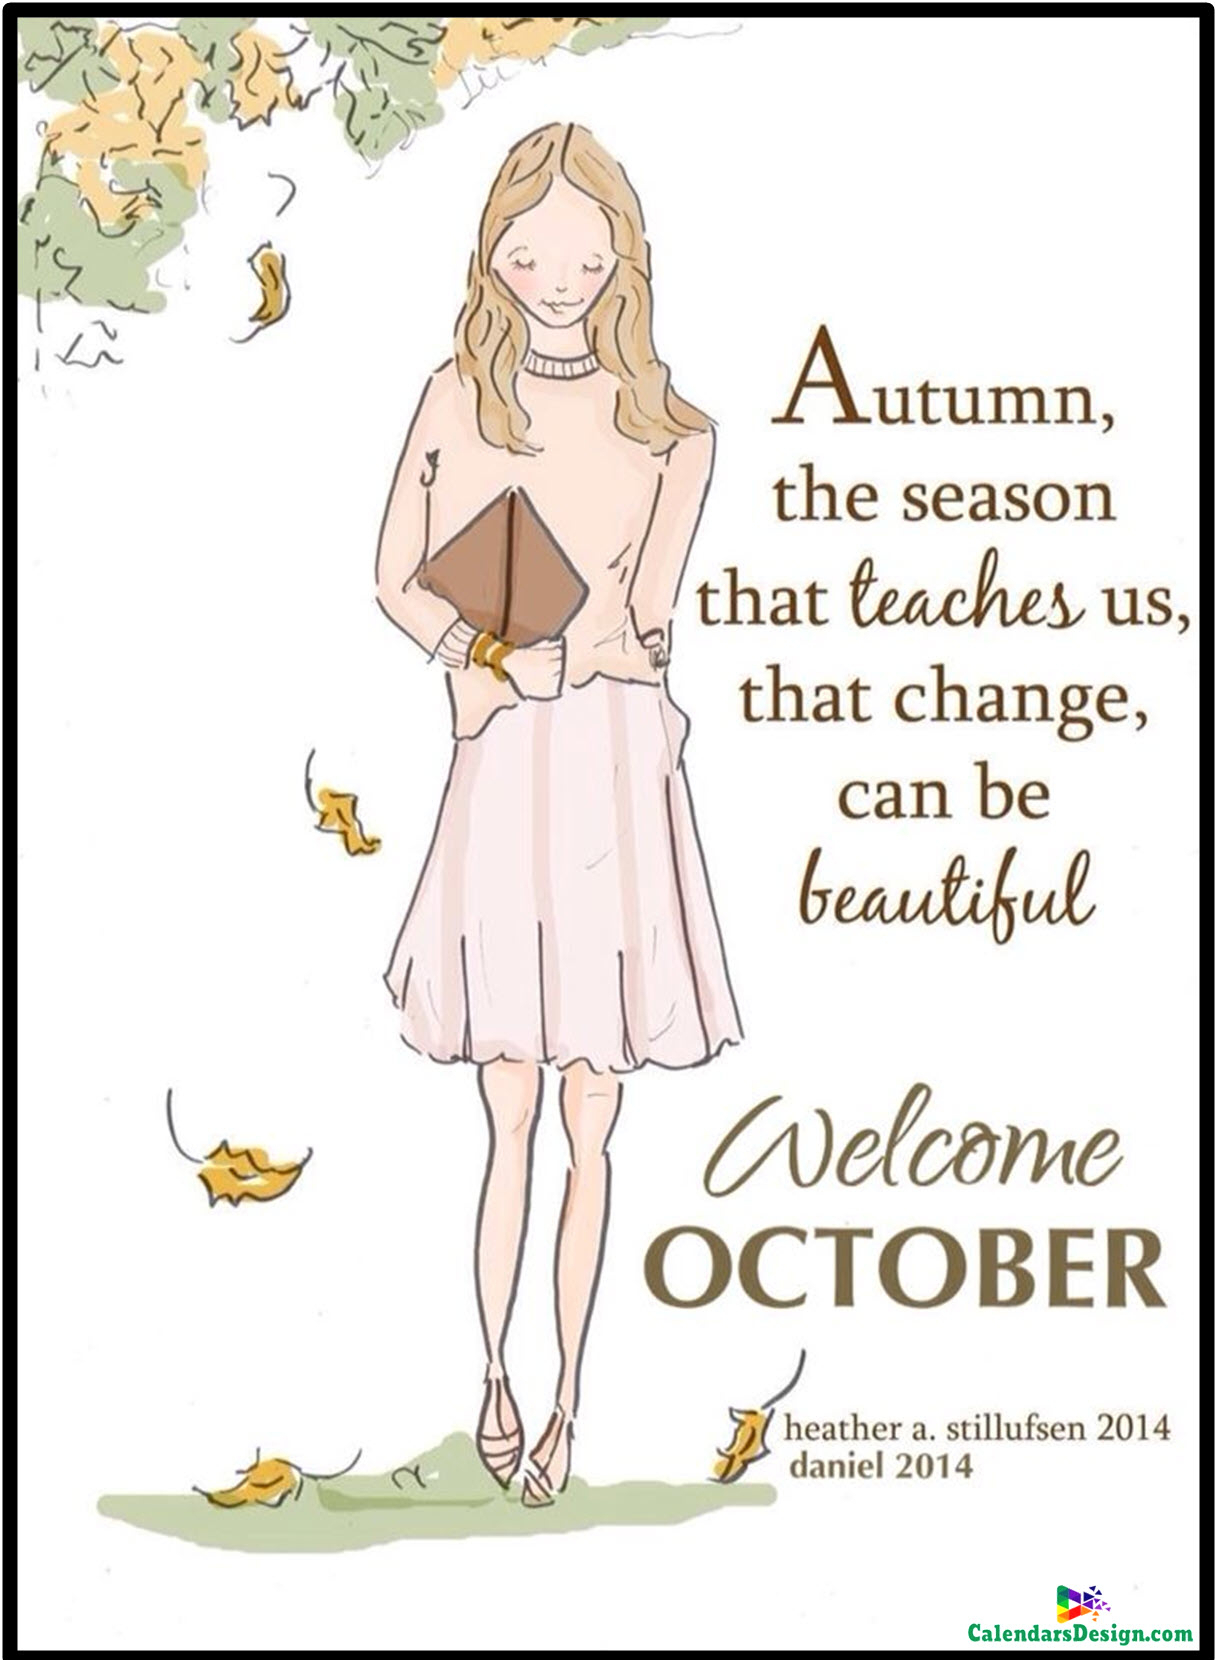 October Quotes For Calendars